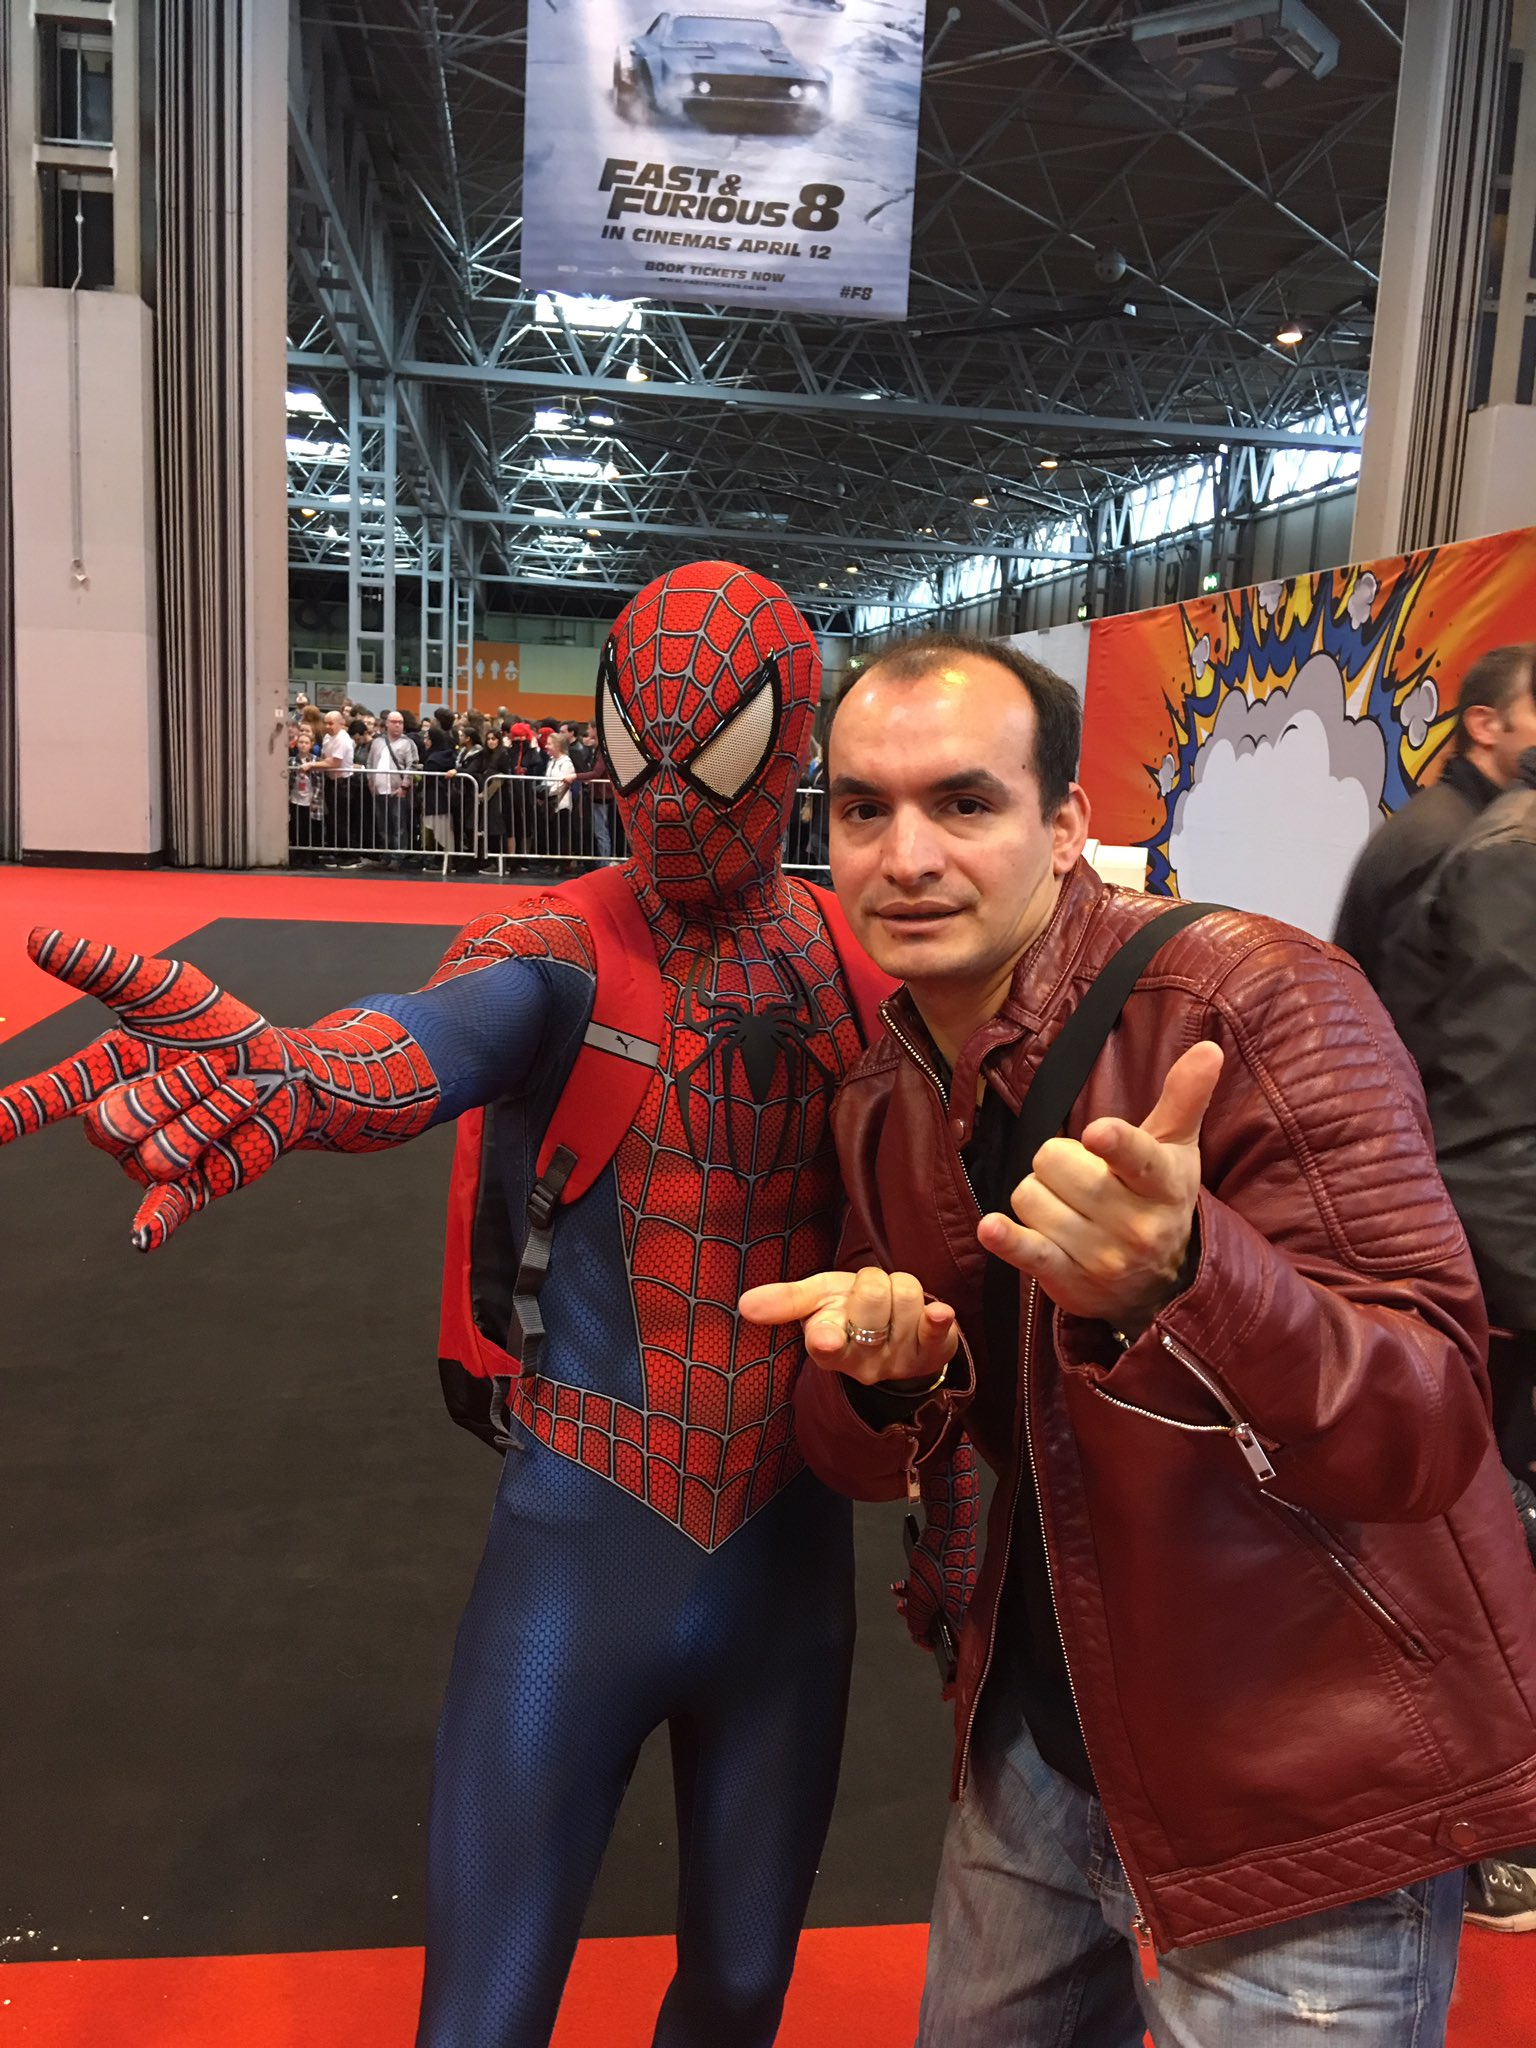 #SpiderMan @MCMComicCon Birmingham 🤘🏻🕷 #mcmBHM17 https://t.co/7dlwOUIbnW